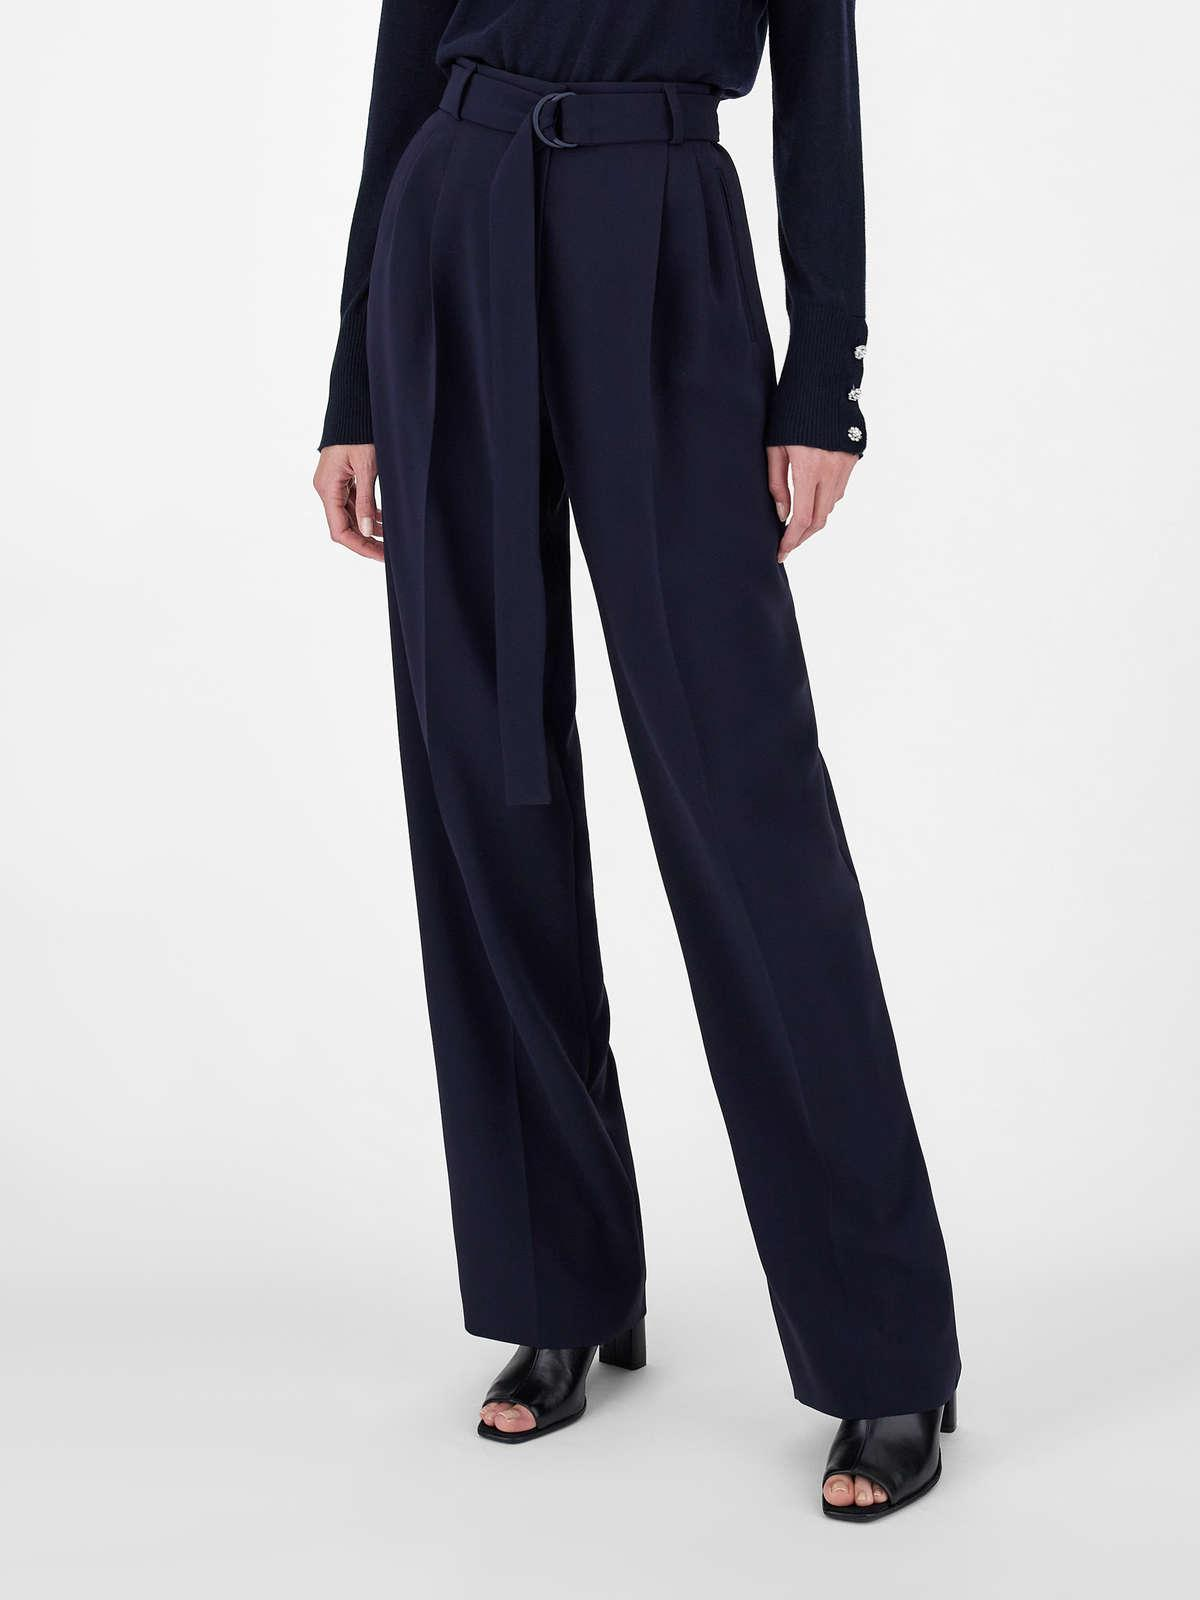 Womens Max Mara Trousers And Jeans | Cady Trousers Navy